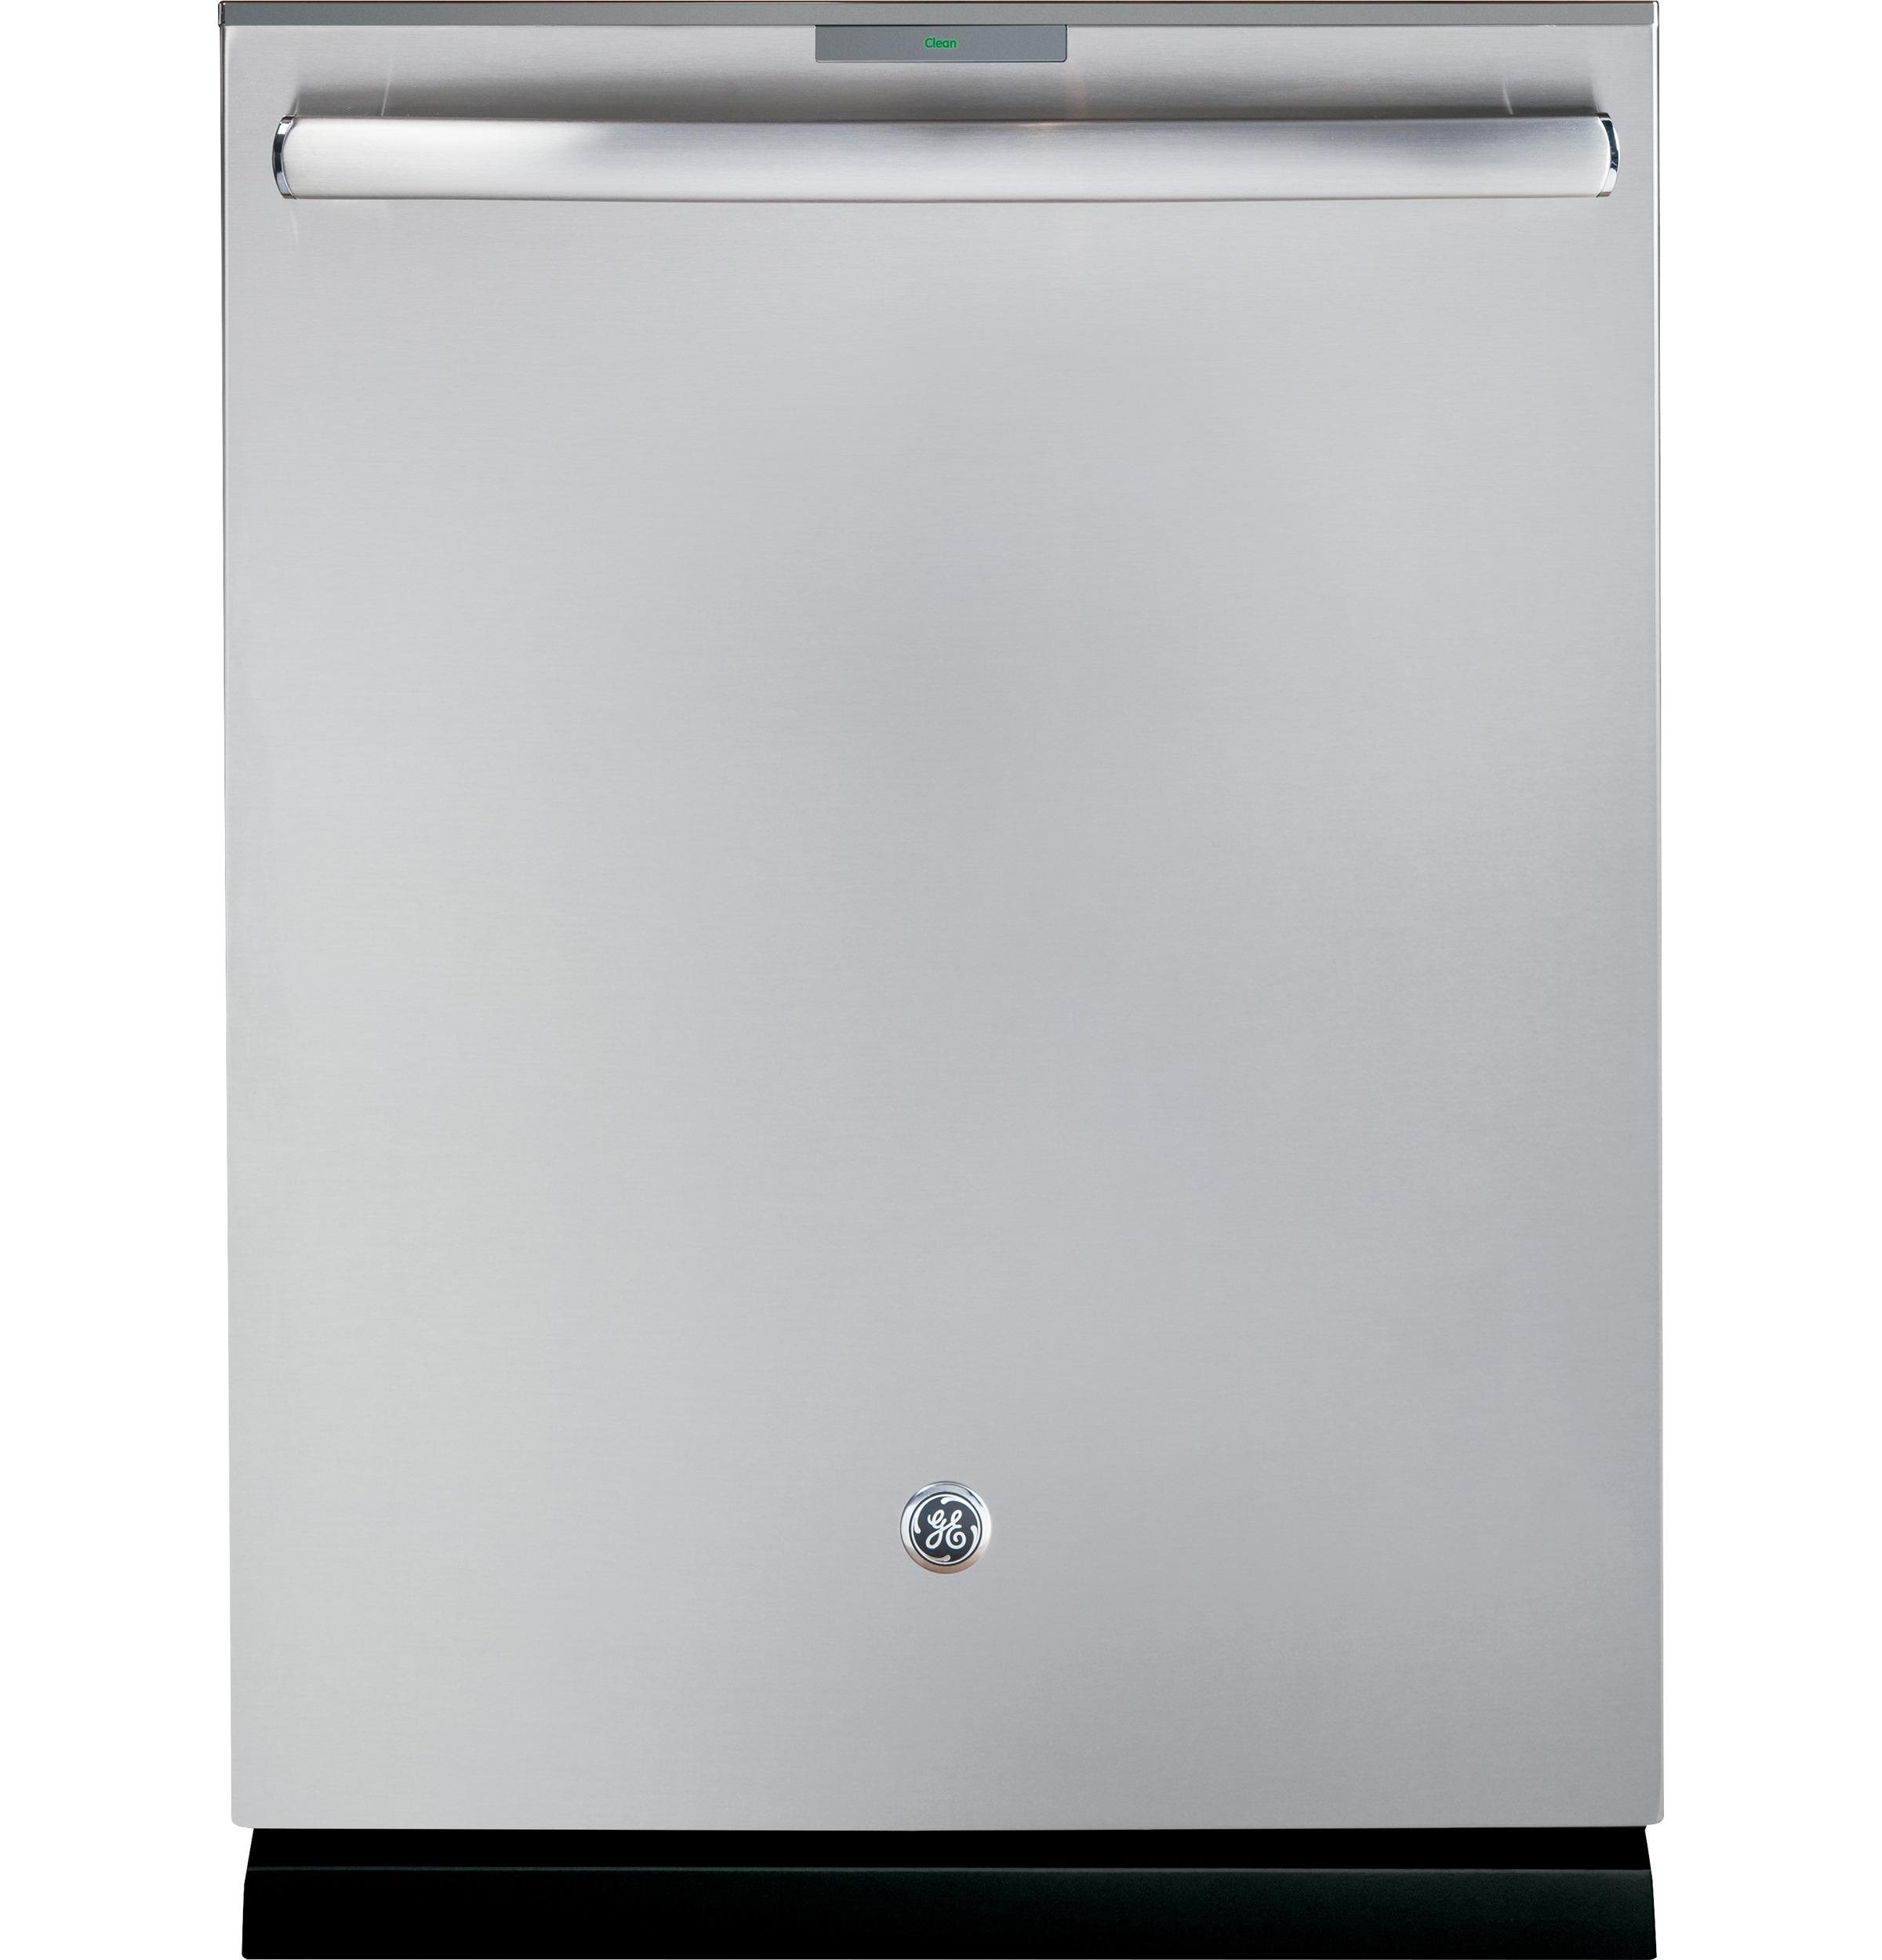 GE Profile(TM) Stainless Steel Interior Dishwasher with Hidden Controls